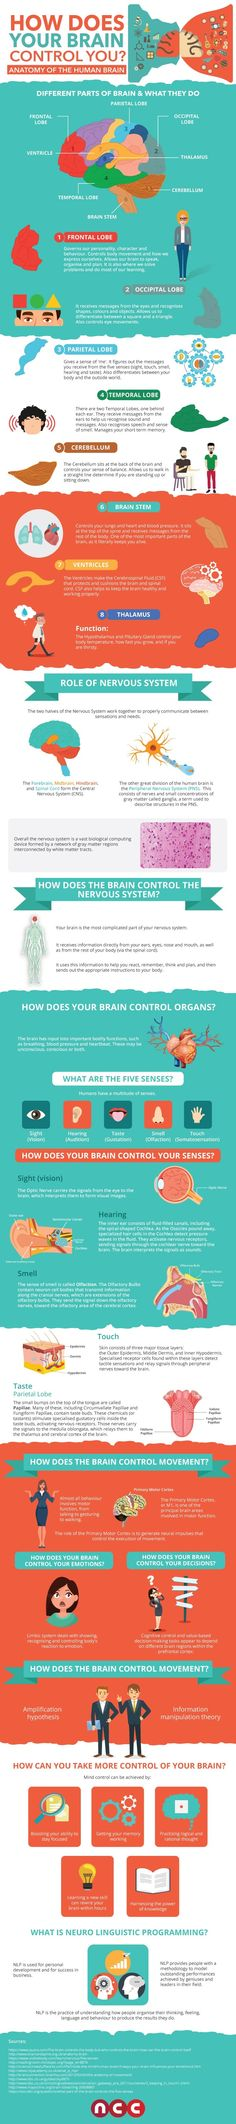 How Does Your Brain Control You? #infographic #Brain #Health